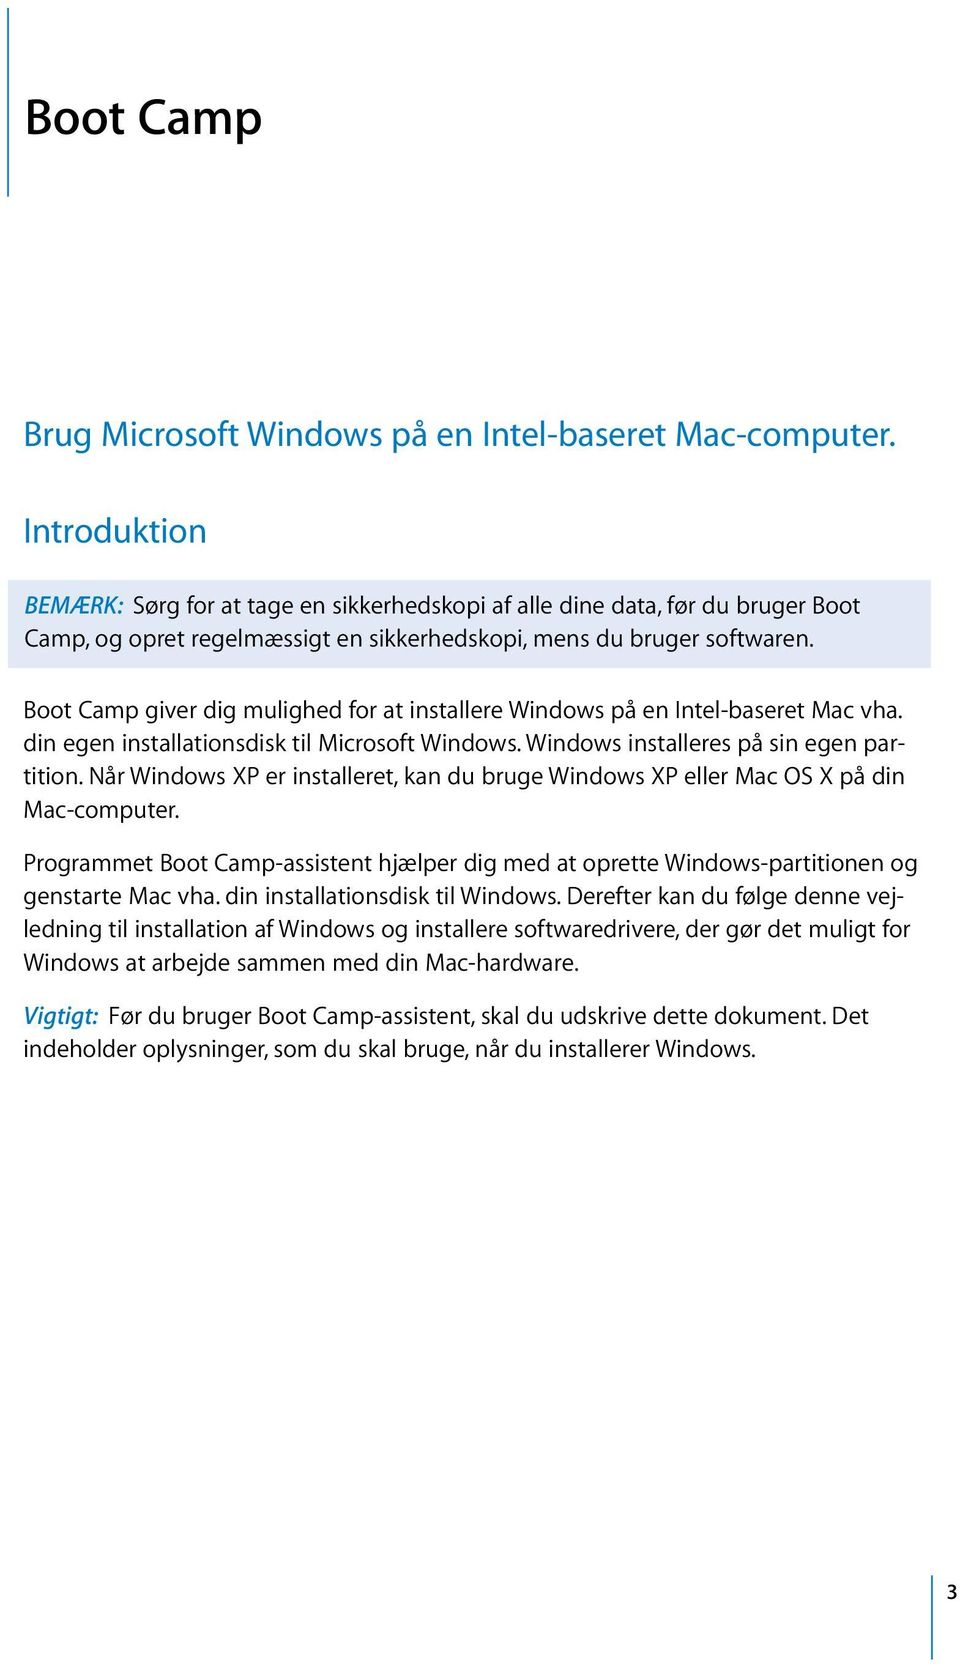 Boot Camp giver dig mulighed for at installere Windows på en Intel-baseret Mac vha. din egen installationsdisk til Microsoft Windows. Windows installeres på sin egen partition.